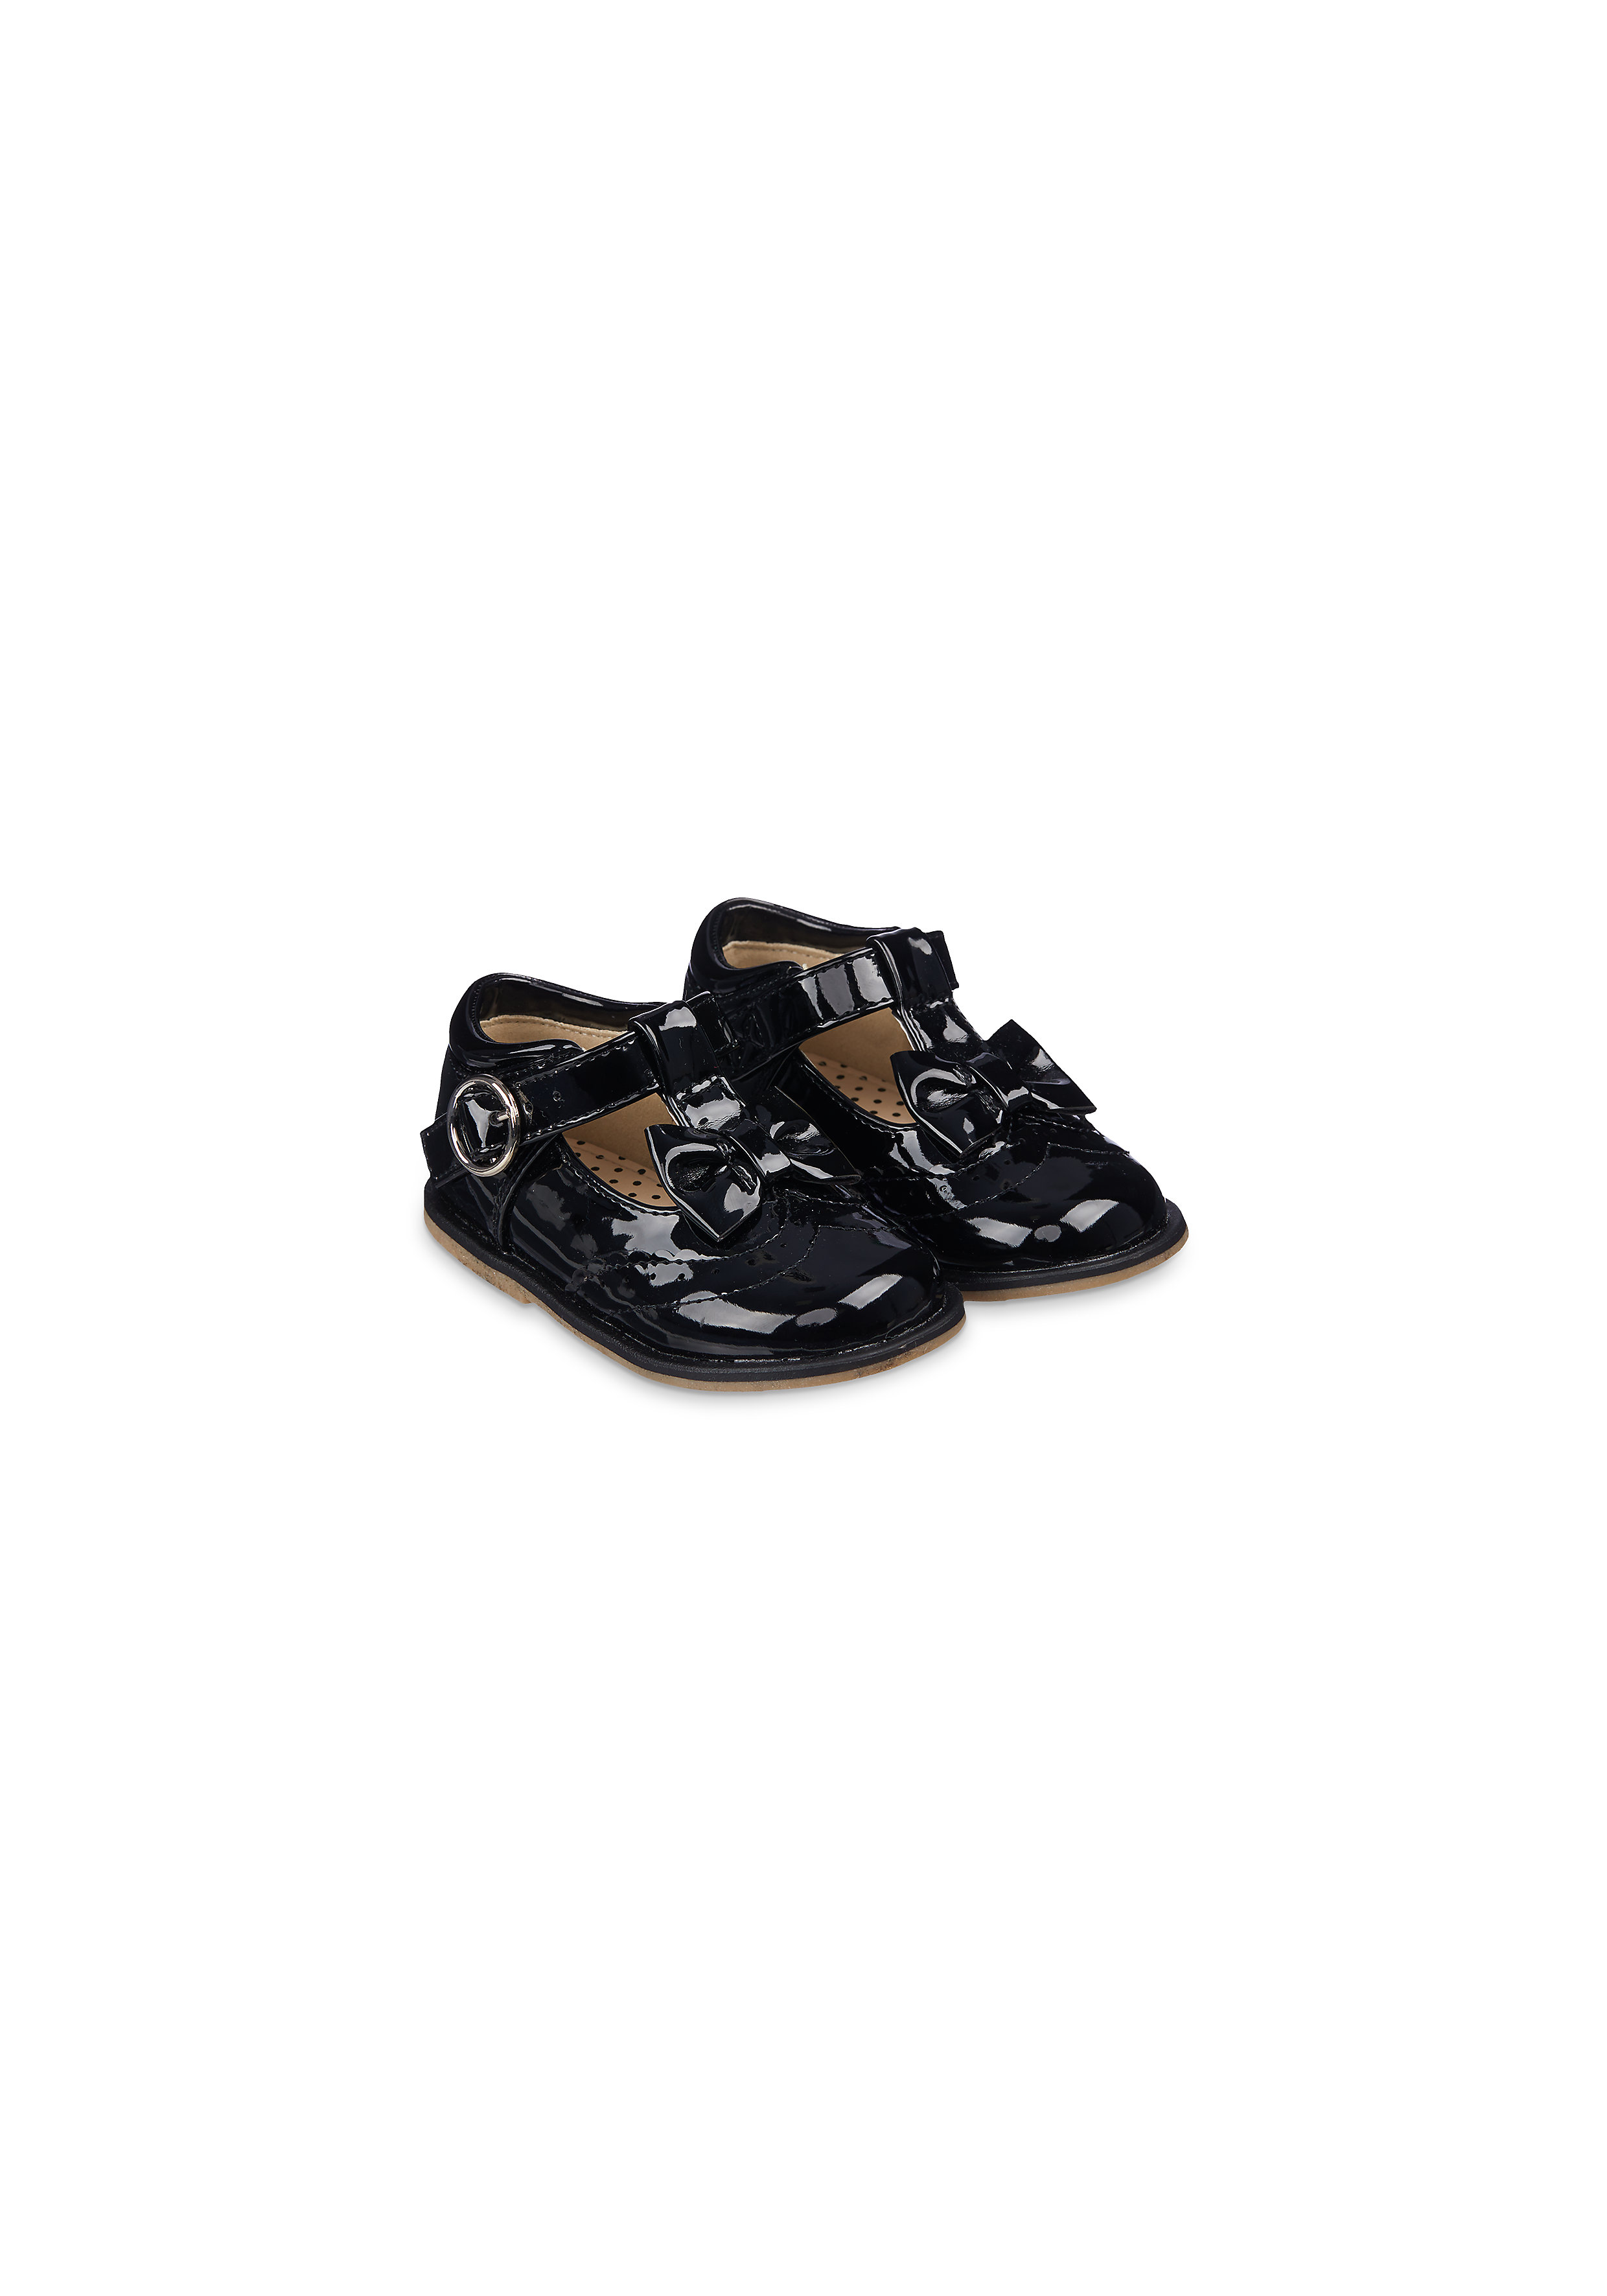 Mothercare | Girls Black Patent Back - To - School Shoes - Black